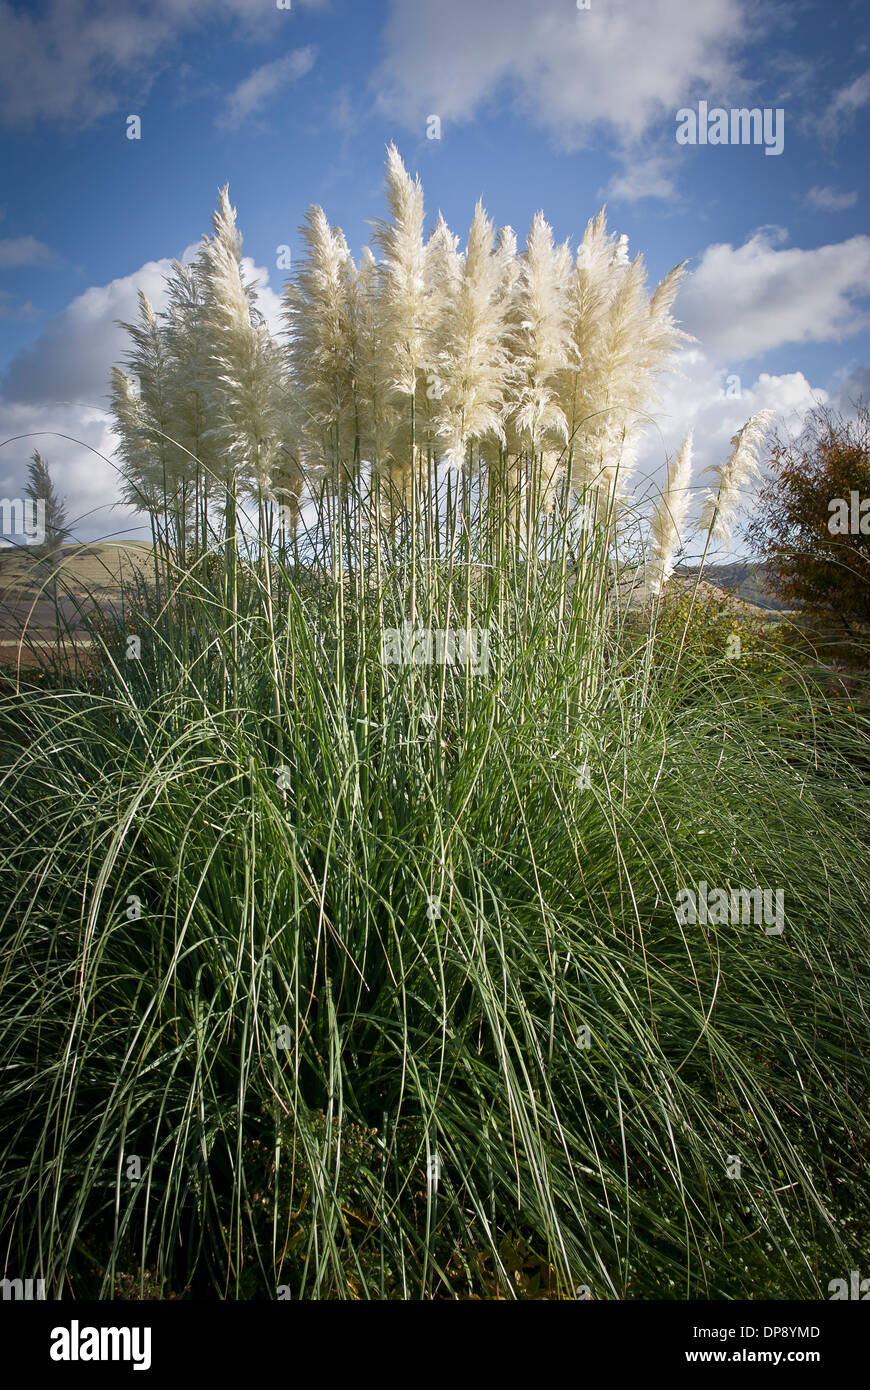 Plumes of cortaderia selloana in upright photograph - Stock Image